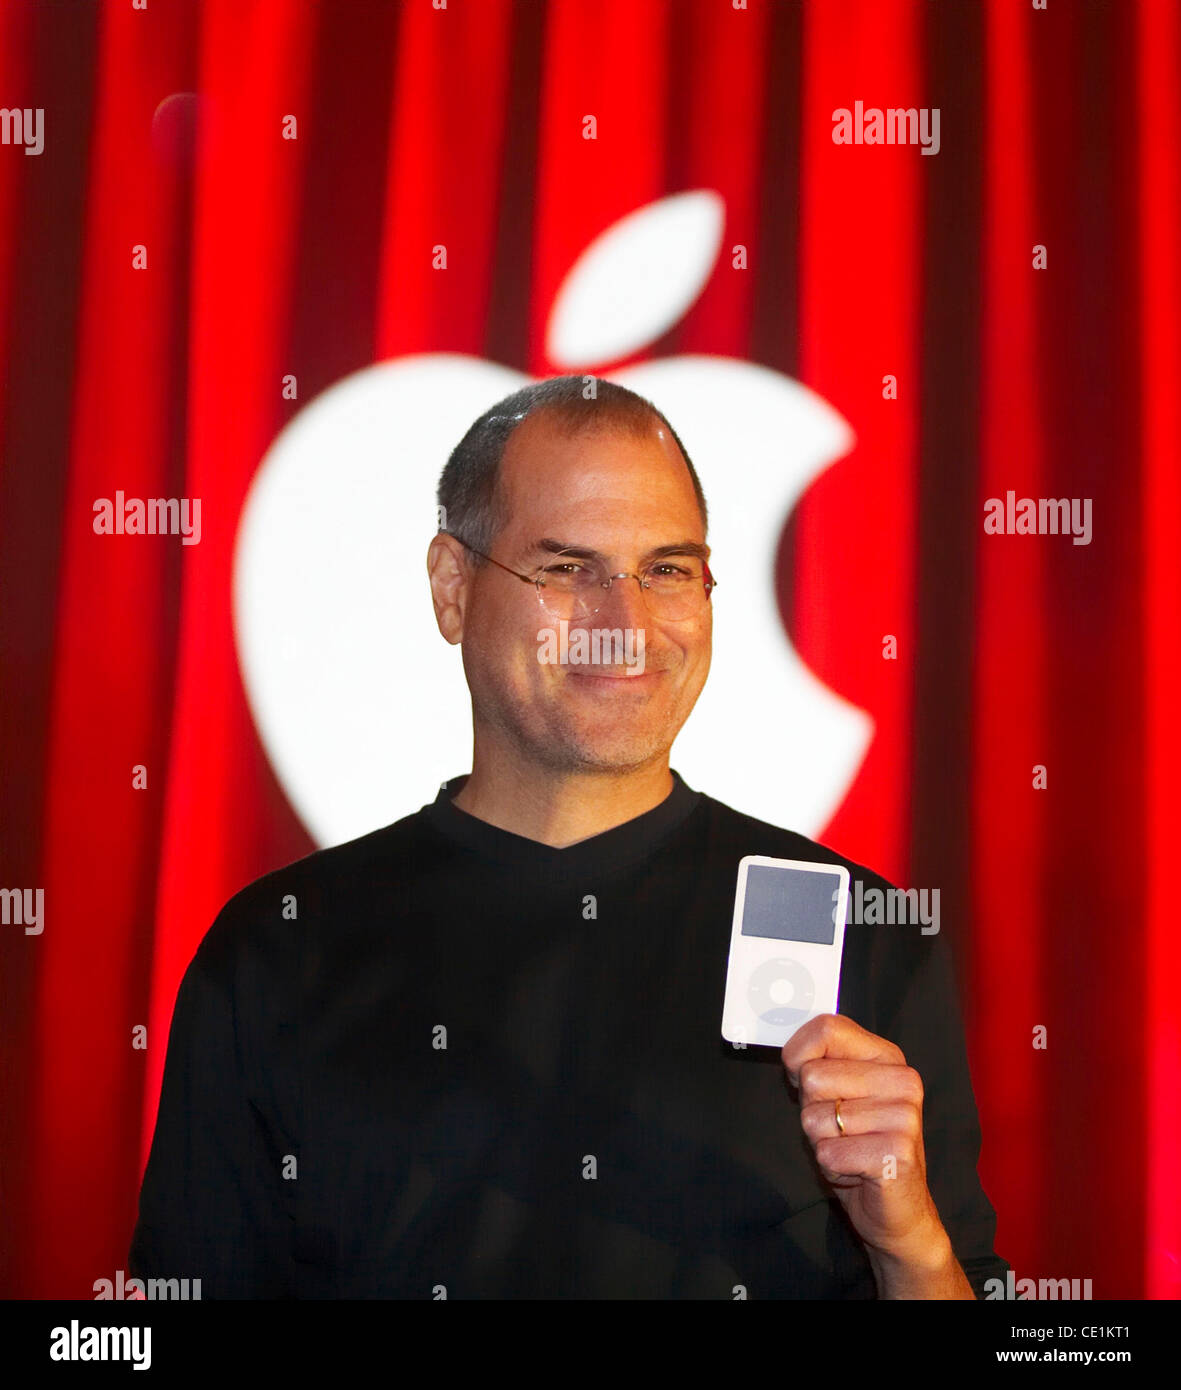 Oct. 5, 2011 - (File Photo) STEVE JOBS - the man who brought us the iPhone, the iPod and the iMac - has died. The - Stock Image